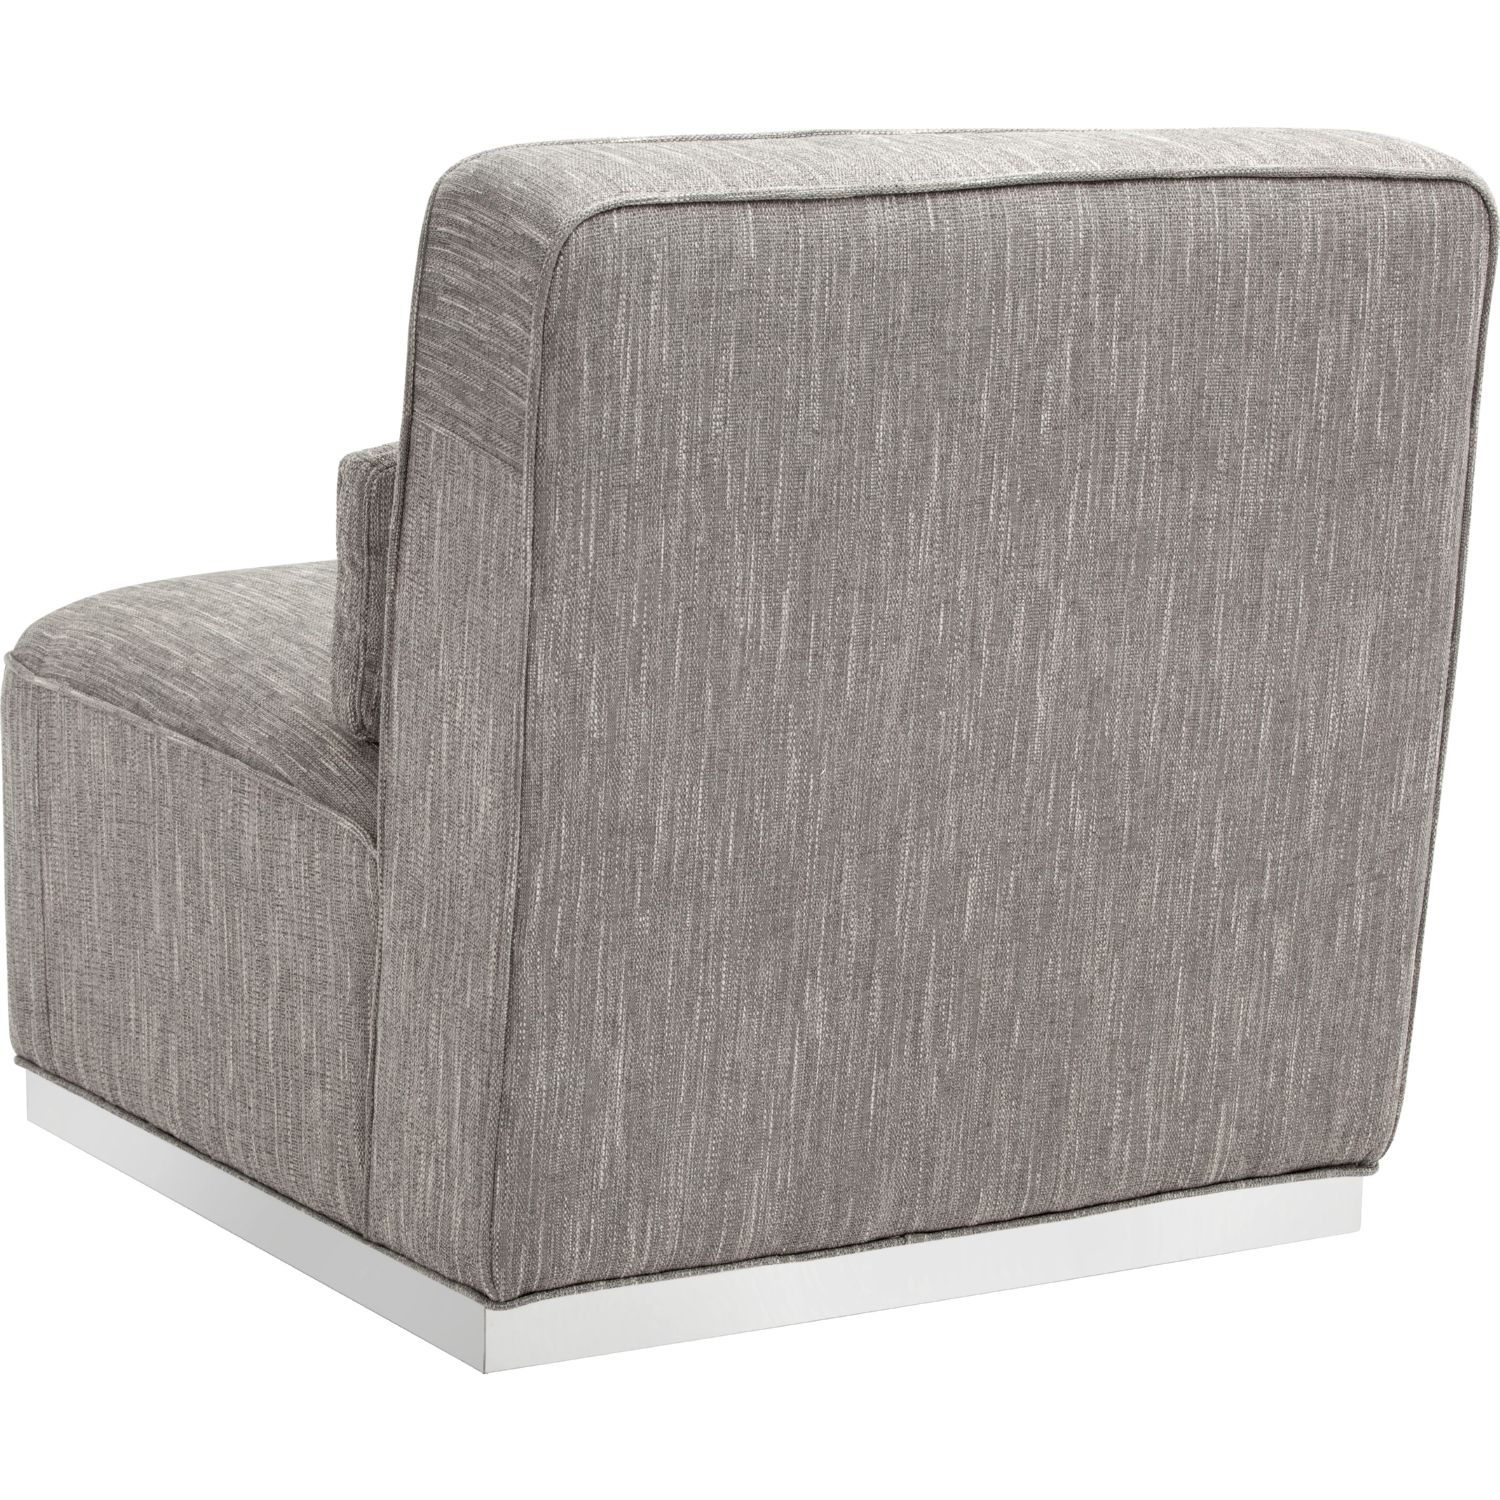 caledon swivel accent chair in hannigan fog fabric on stainless steel base